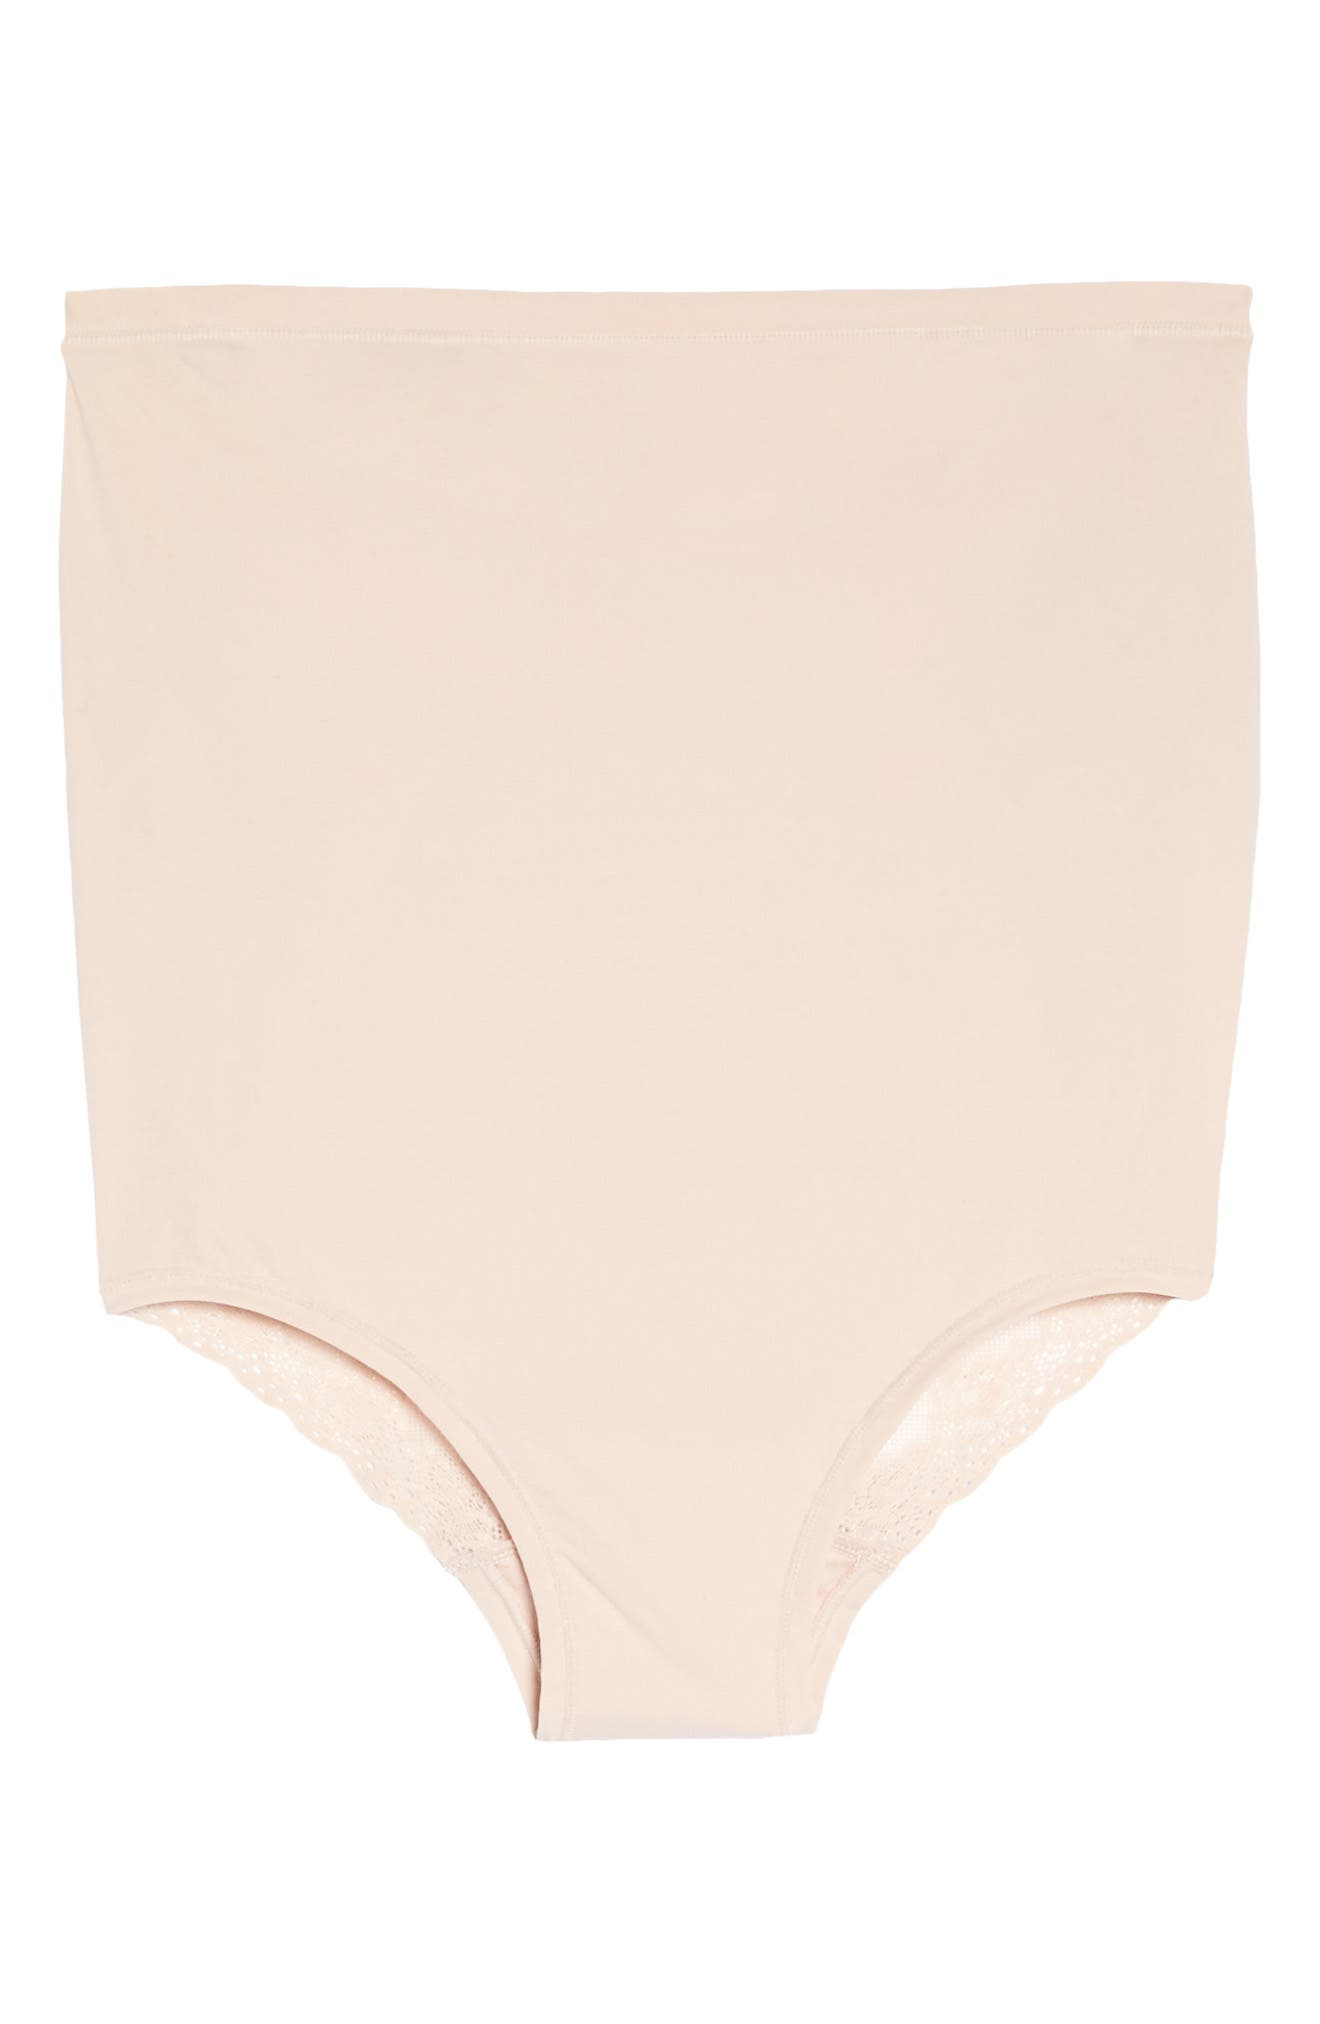 Bliss Maternity Briefs,                             Alternate thumbnail 4, color,                             CAMEO ROSE